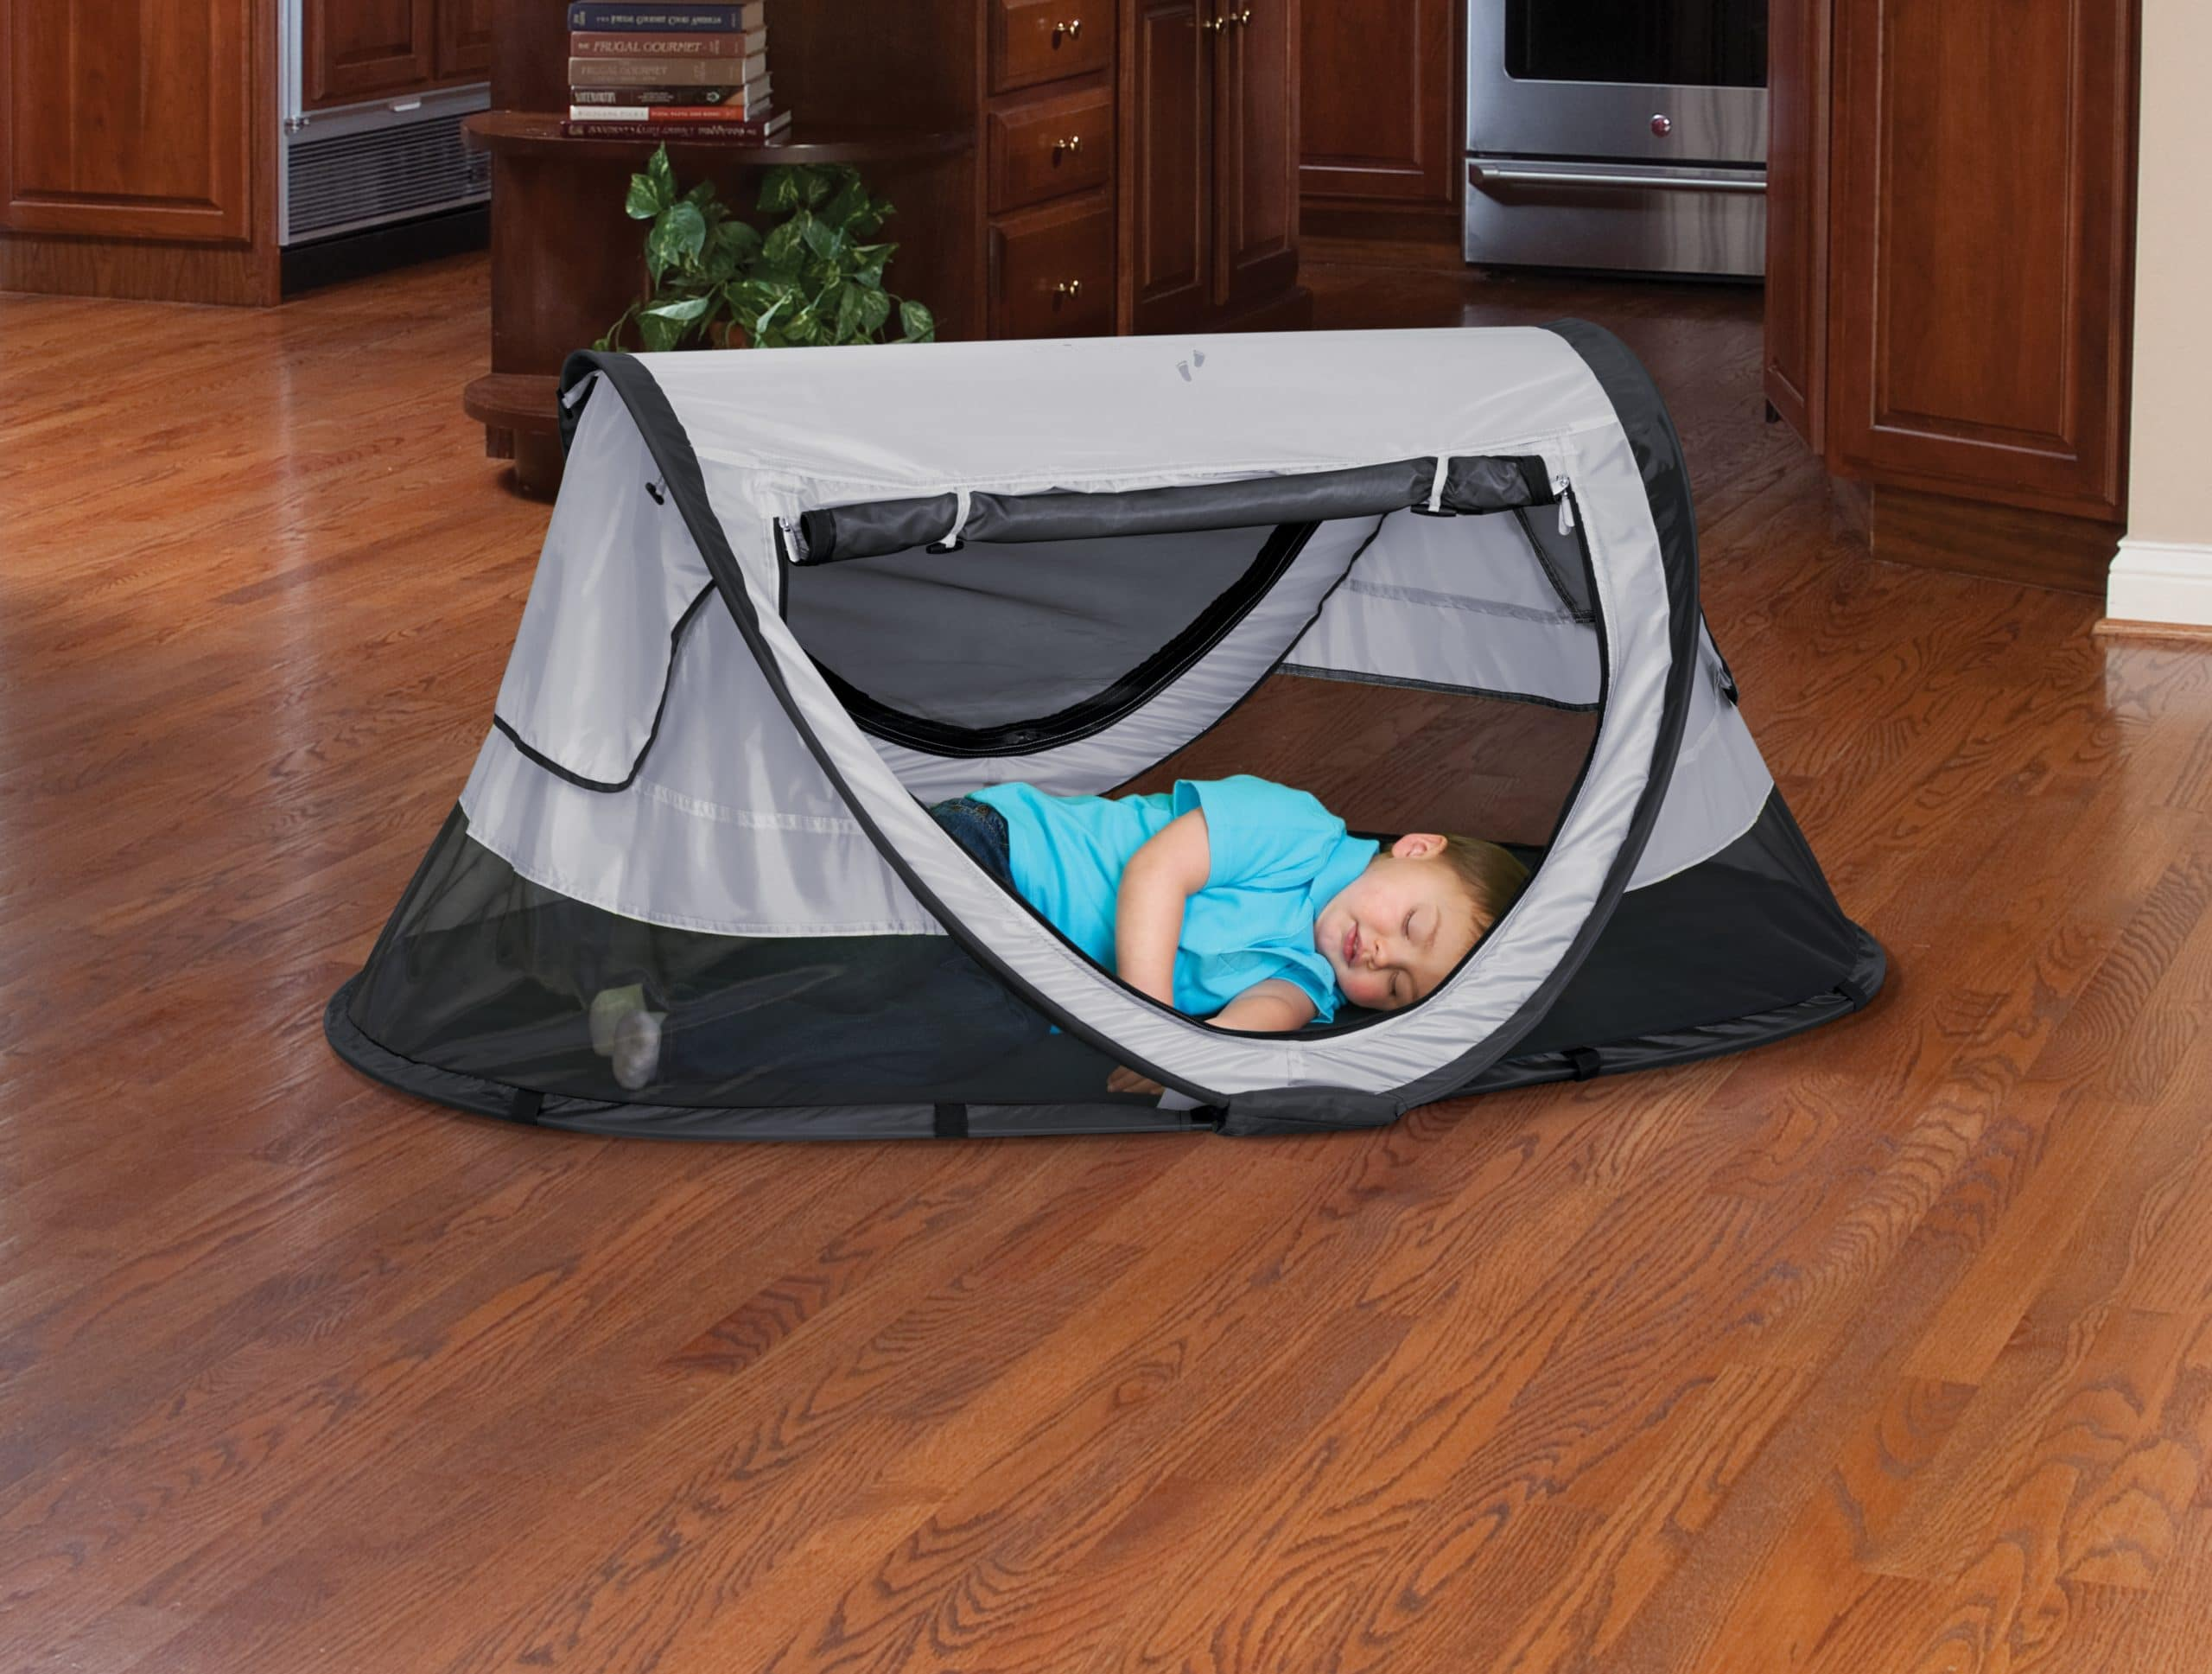 ... P4012_Snap_cuHand_2148 P4012_Suitcase_2158 P4012_0053_Hero cu 2 KidCo PeaPod ... & PeaPod Plus Travel Bed